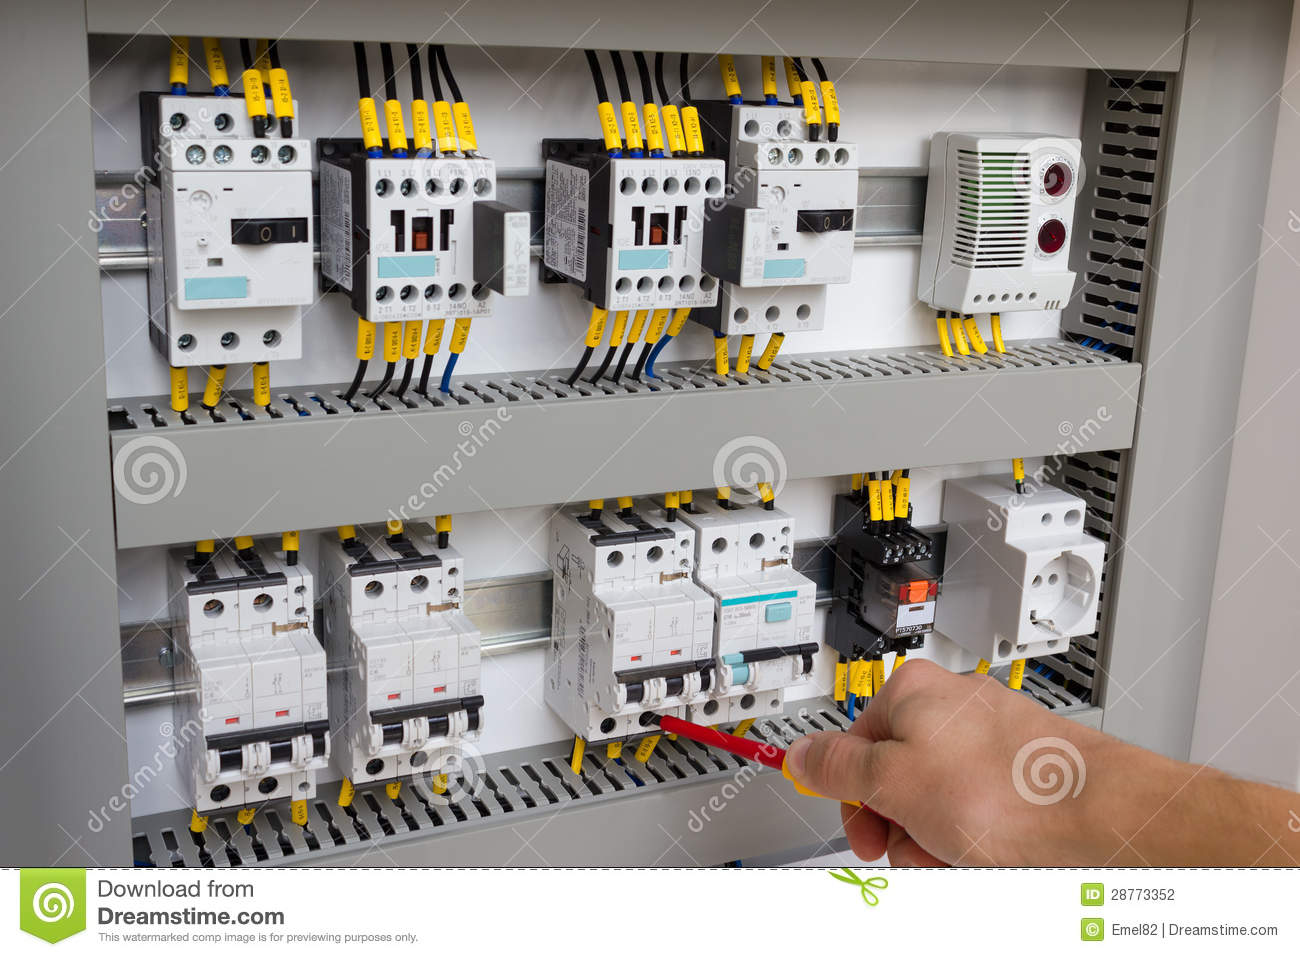 Smoke Detector Wiring Diagram besides Rcd Wiring Diagram further Wiring Diagram For Addressable Fire Alarm System also Stock Photography Technician Working Electrical Cabi  Image28773352 besides Galgorm Manor Bedroom And Spa Extension. on fire alarm wiring